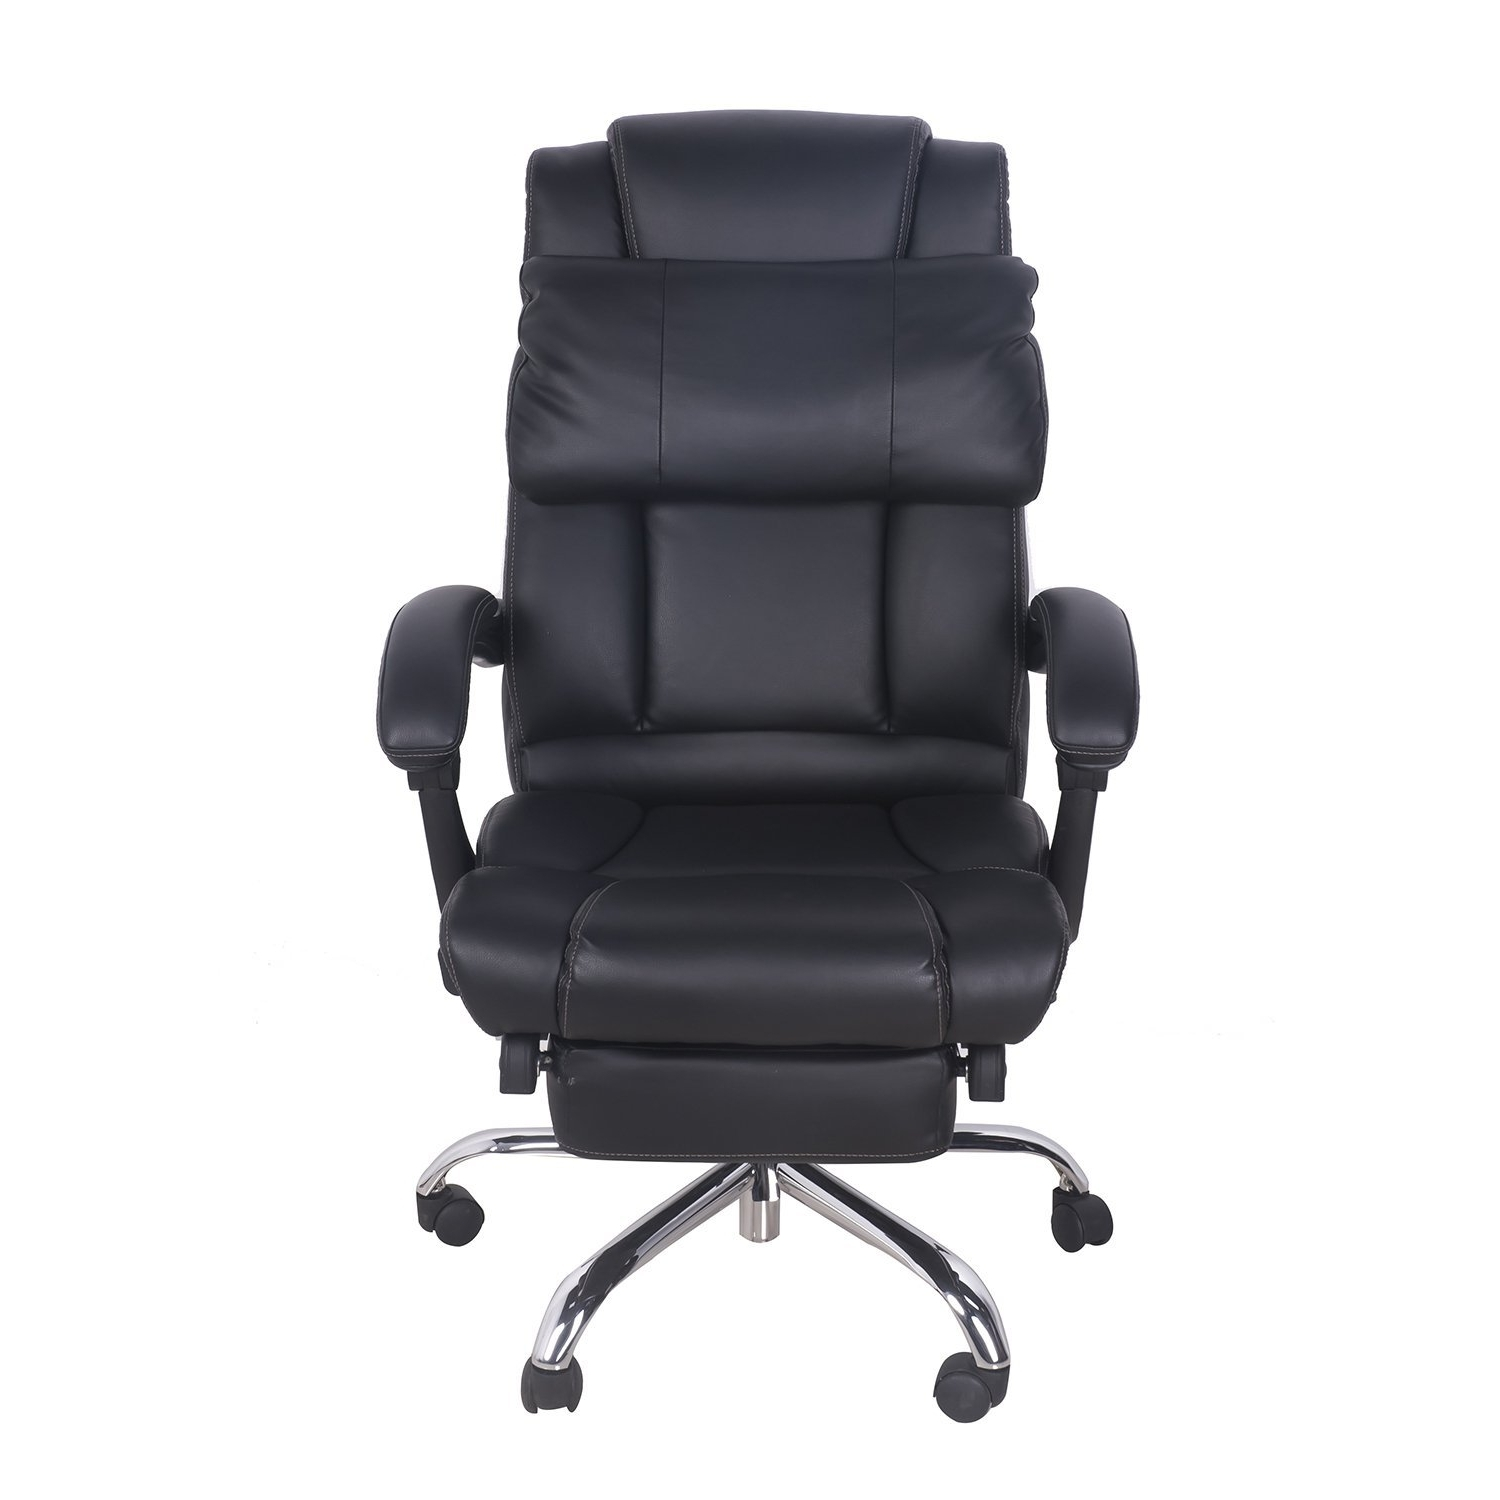 Updated Guide For 2018 Within Leather Swivel Recliner Executive Office Chairs (View 3 of 20)